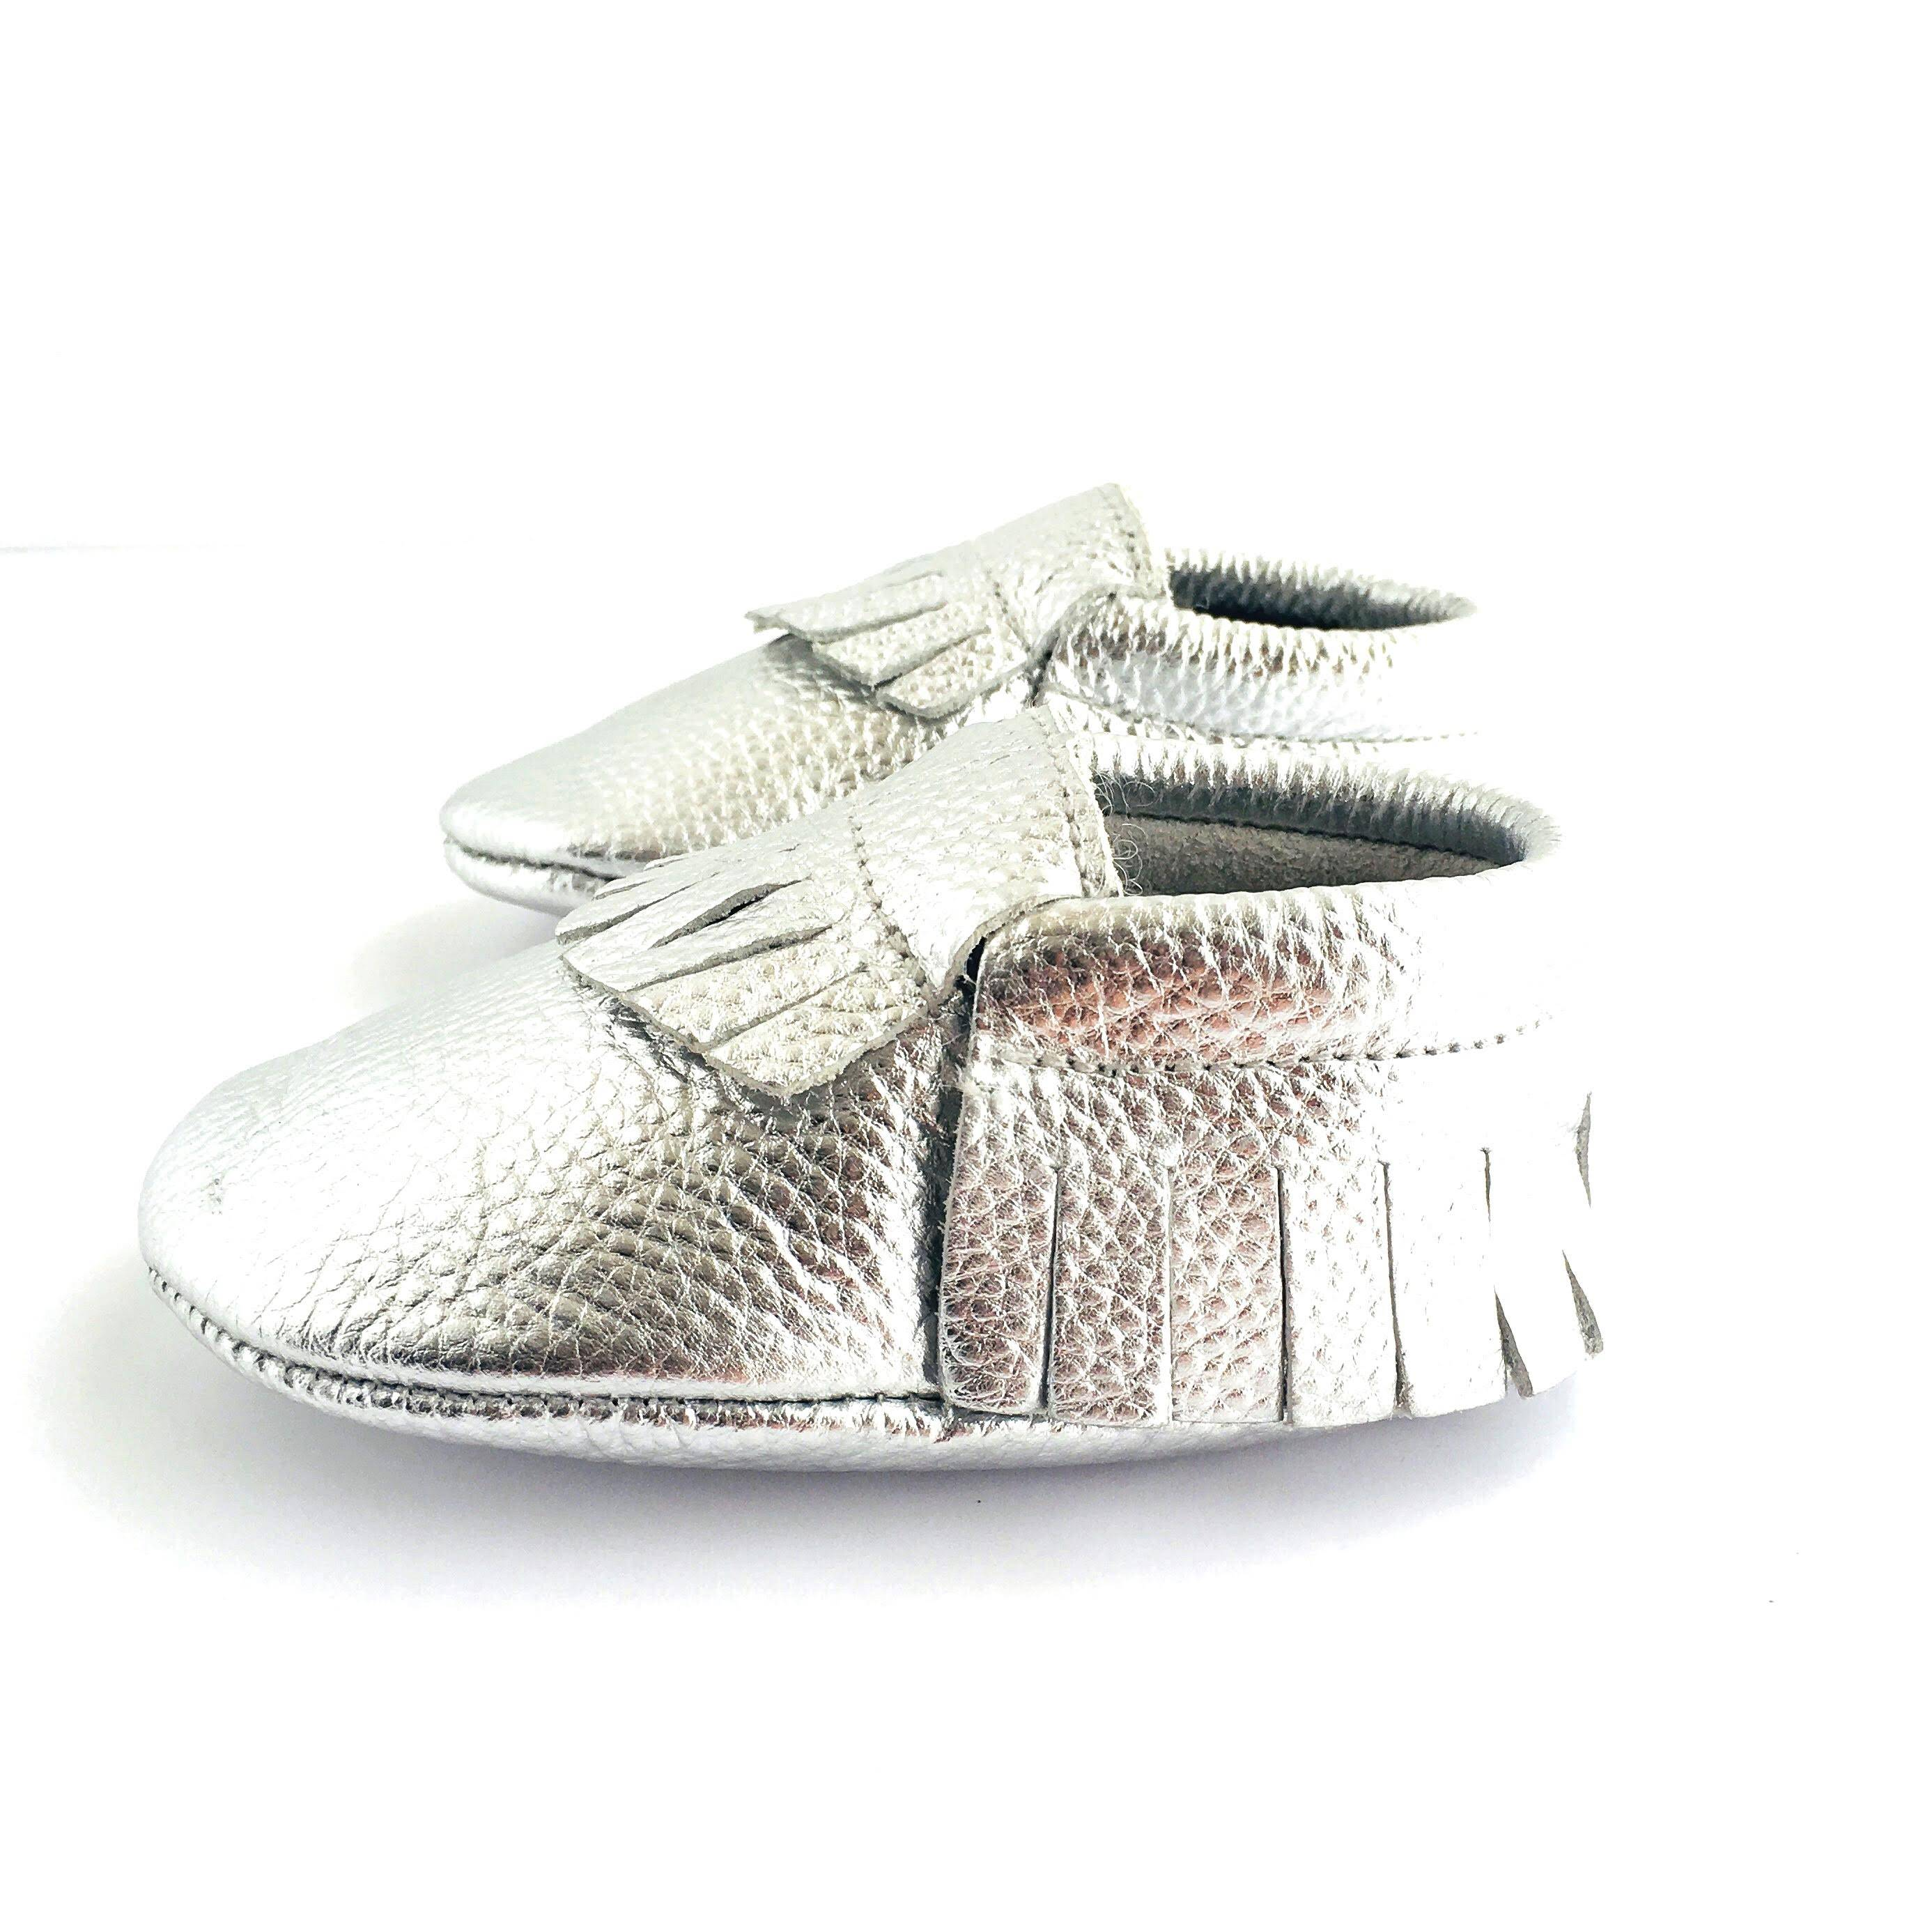 Metallic Silver colour soft sole shoes with fringe sole view